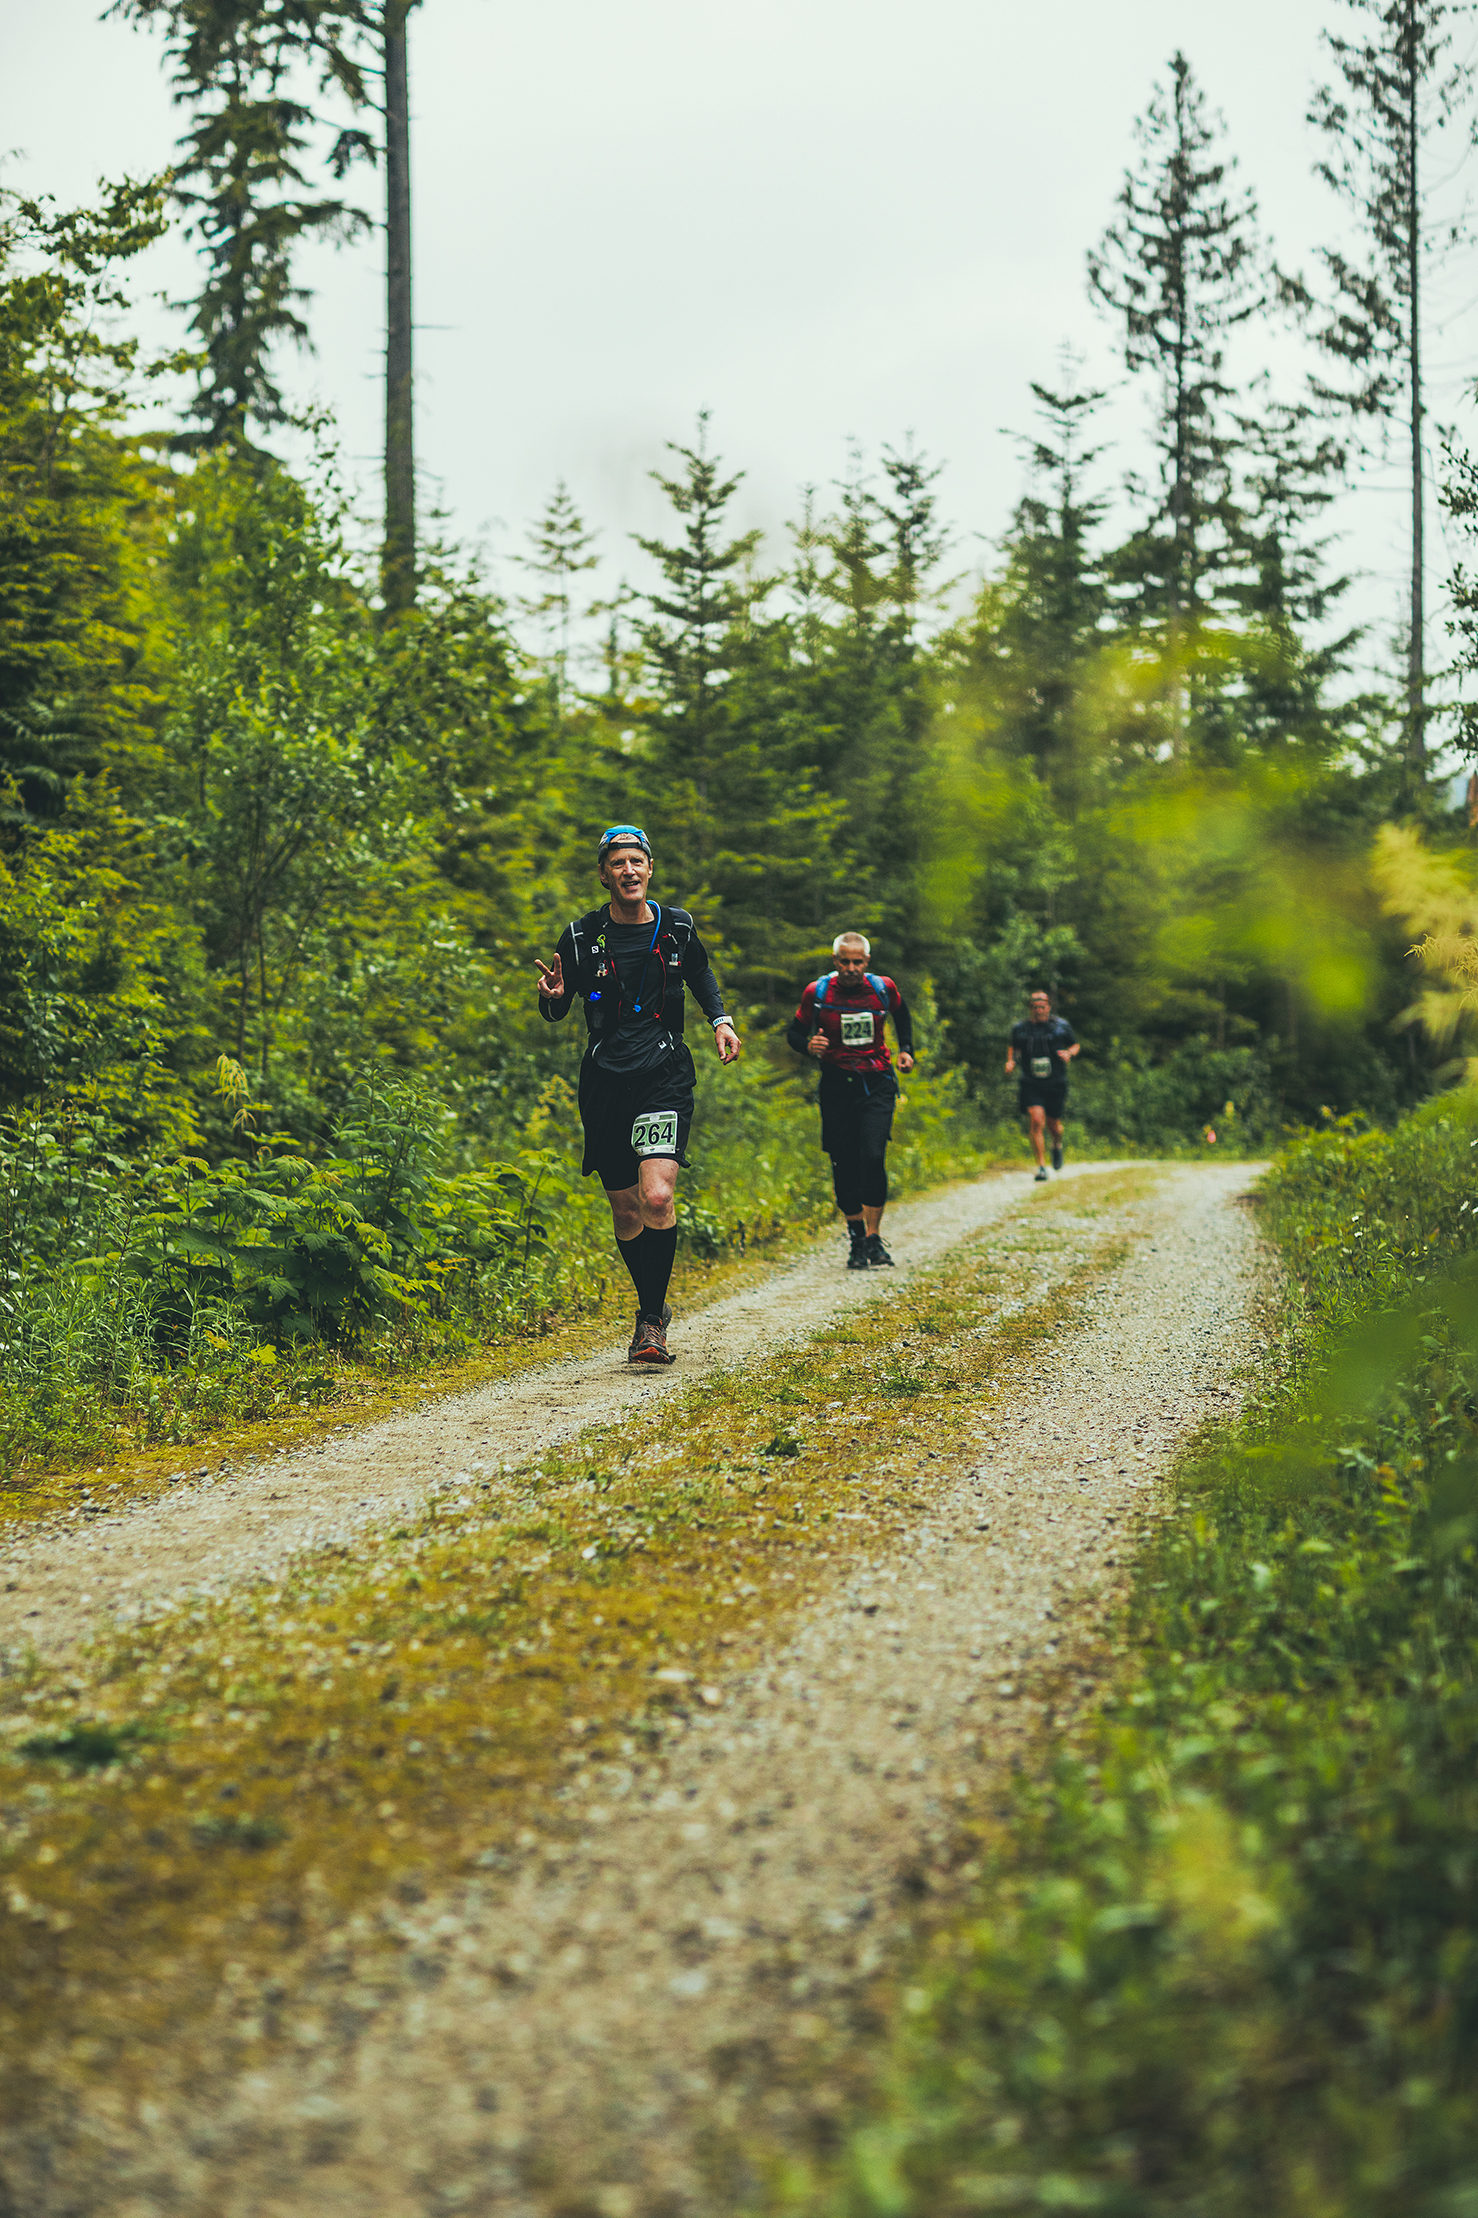 Fraser Valley Trail Races - Bear Mountain - IMG_1726 by Brice Ferre Studio - Vancouver Portrait Adventure and Athlete Photographer.jpg